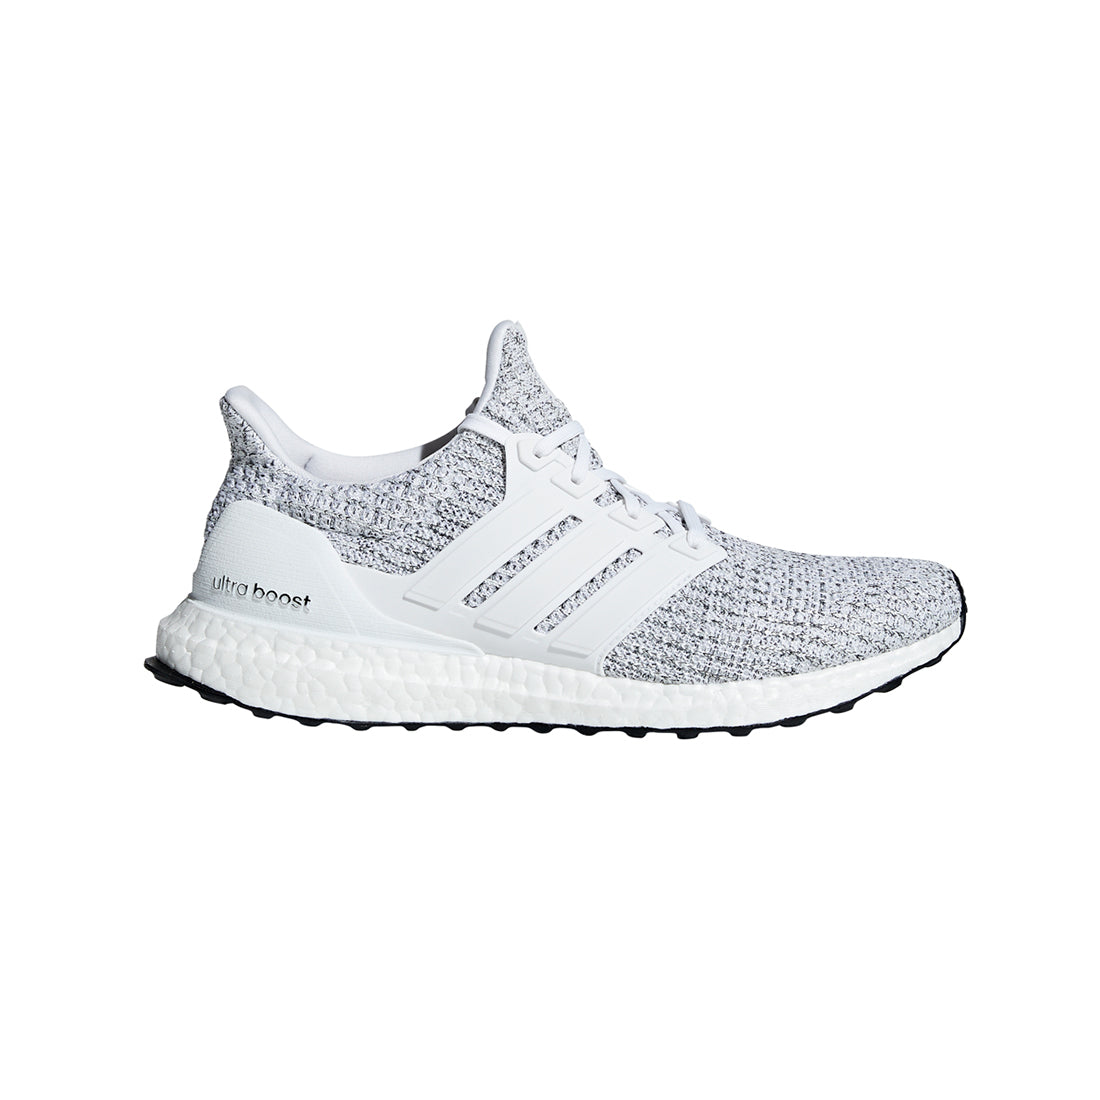 334f270b96c5 Men s UltraBoost 18 Running Shoe - Non Dyed Cloud White Grey – Gazelle  Sports